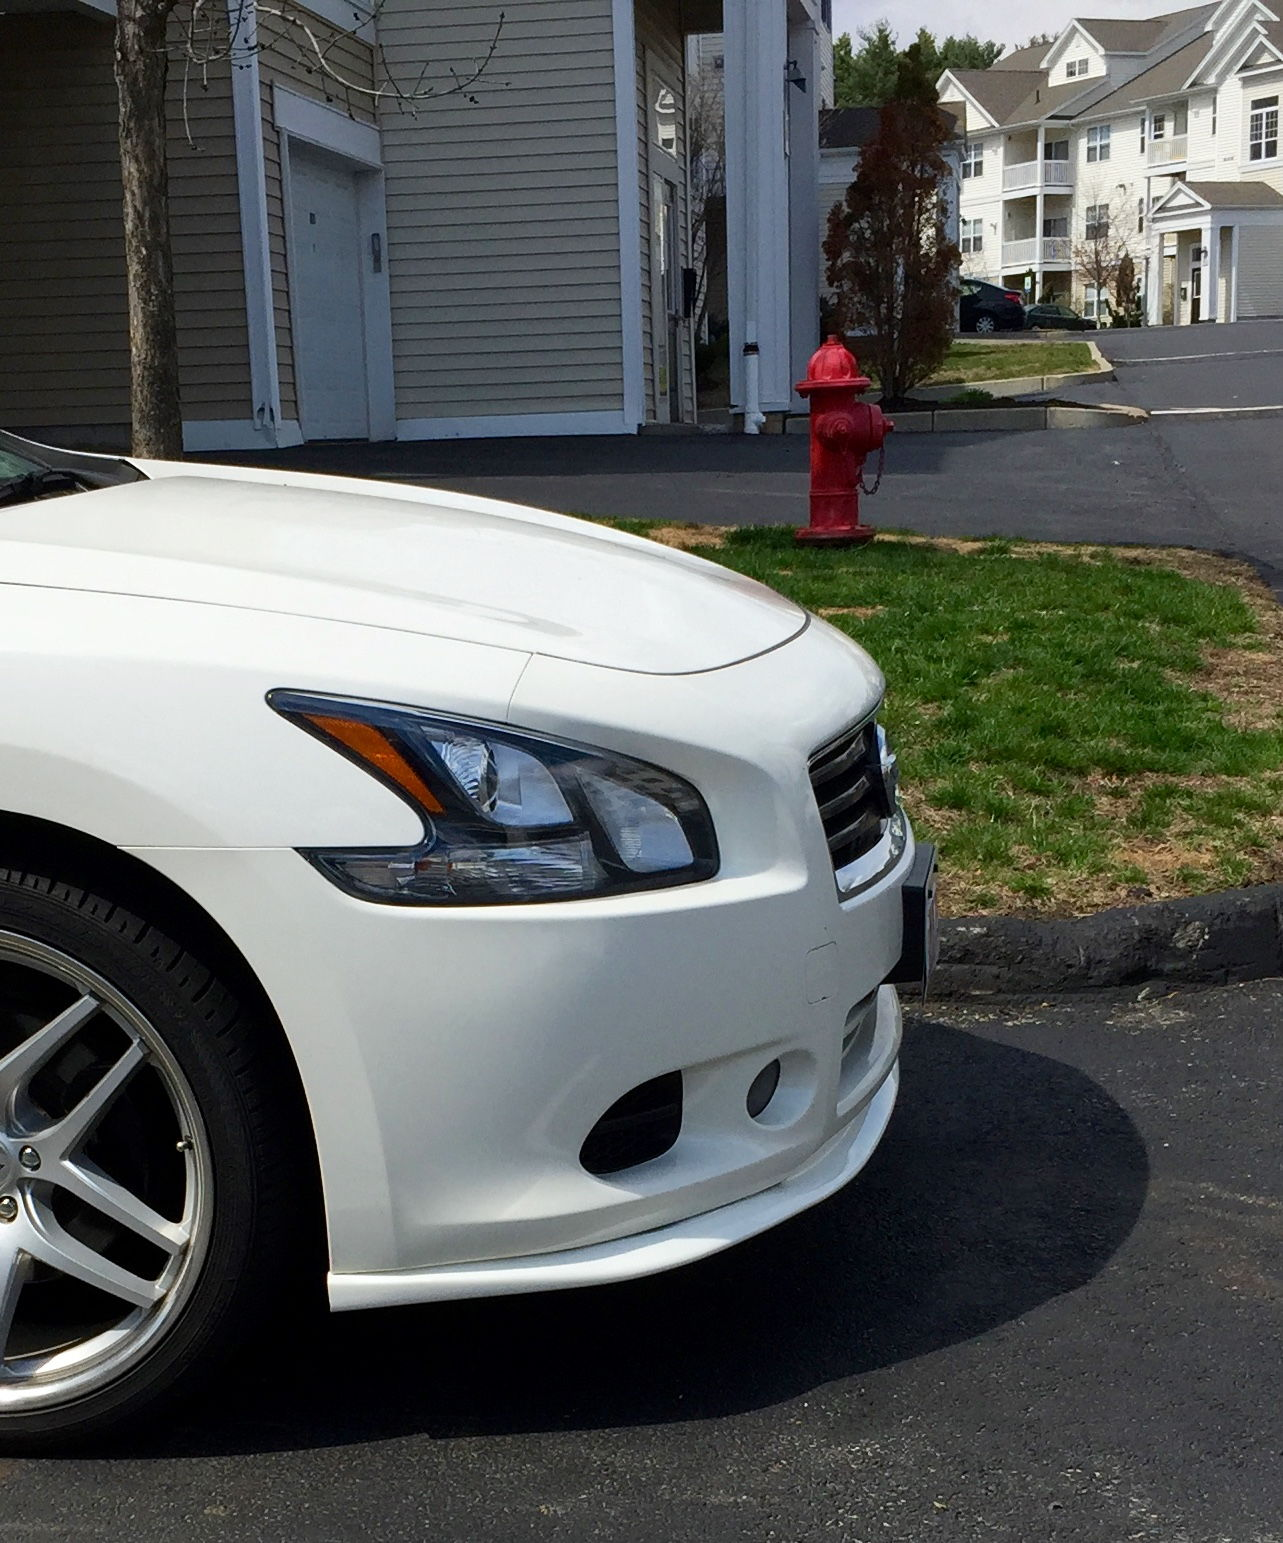 2009 Nissan Maxima Exterior: Question About A From And Rear Lip!